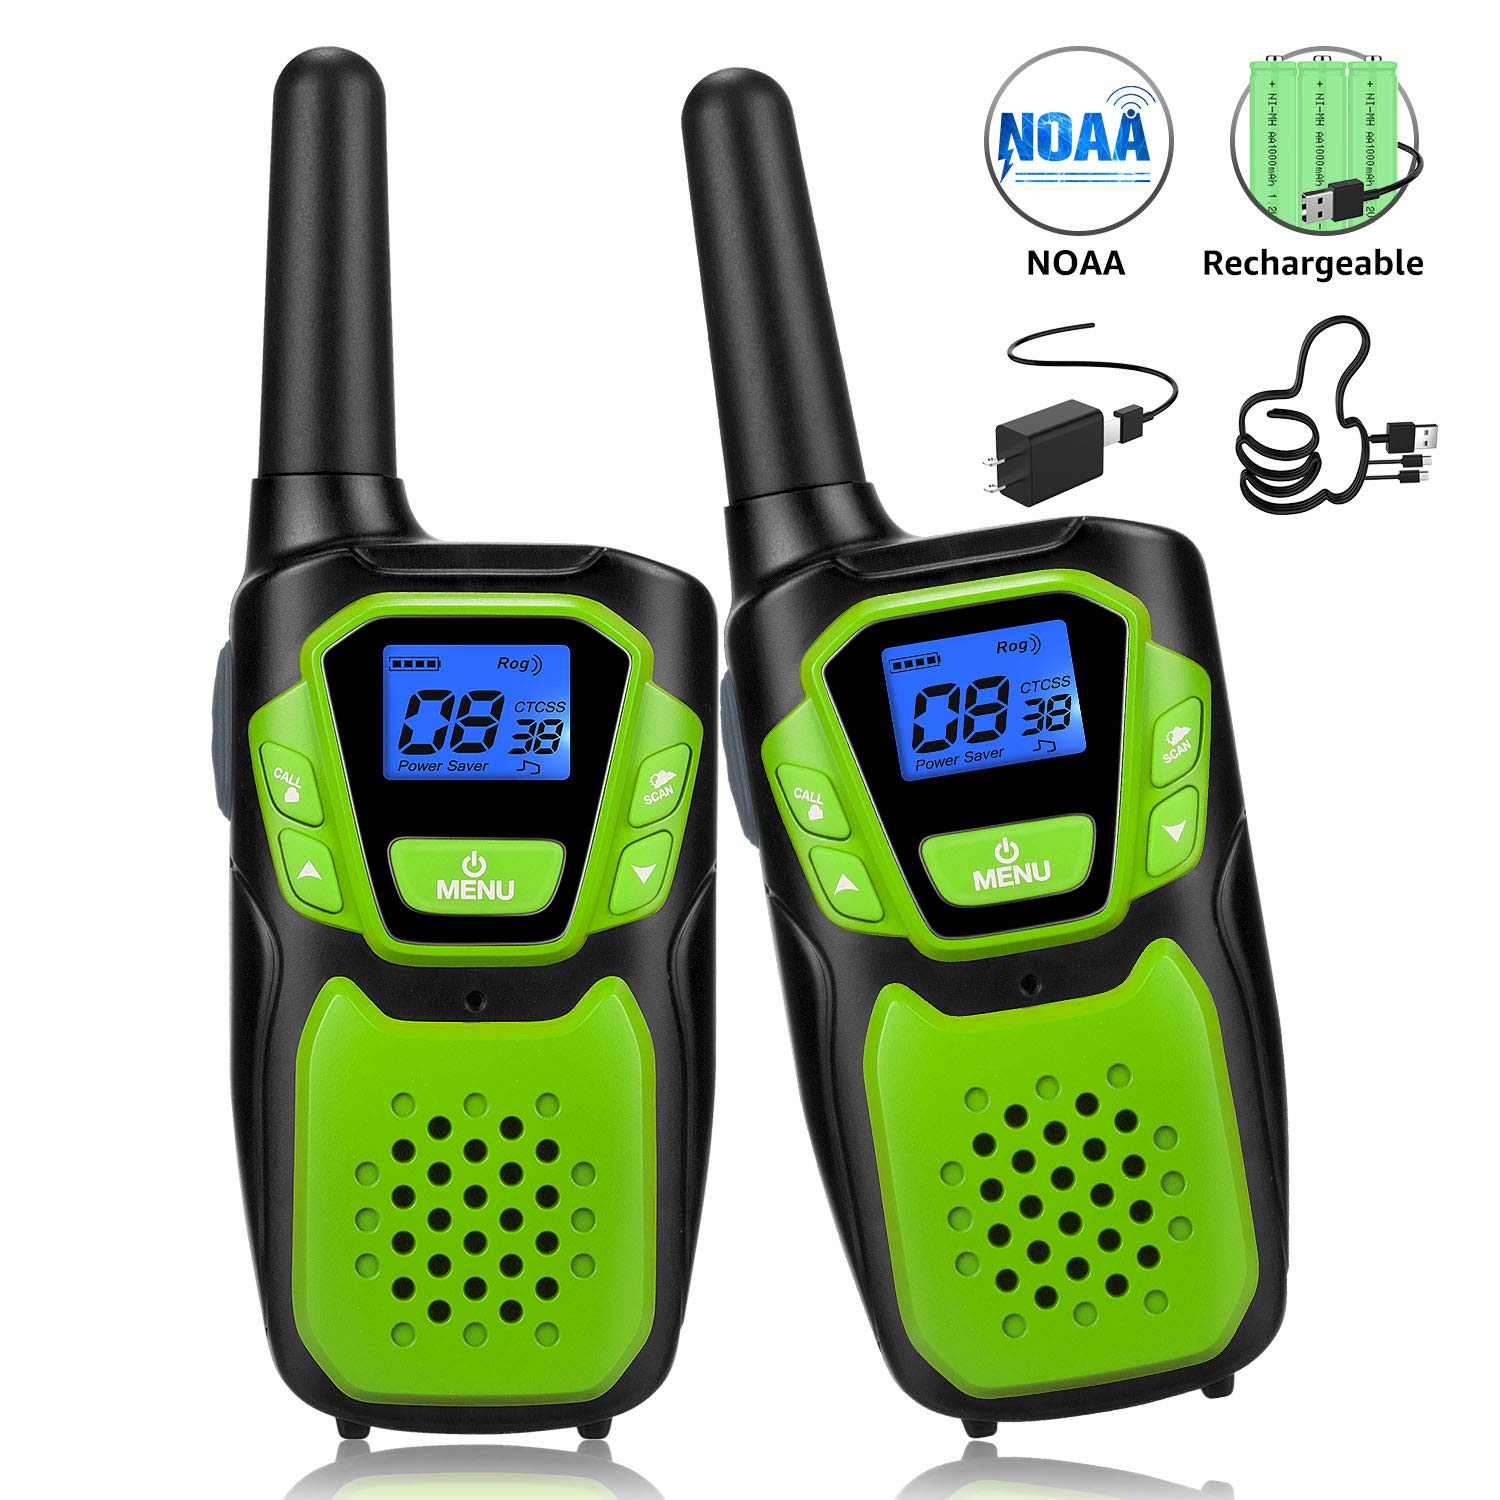 Walkie Talkies for Kids, Funny Talking Toy for 3-12 Years Old Boys and Girls, Easy to Use Rechargeable Walky Talky Christmas Birthday Gift for Hiking Camping Trip Adventure (Green 2 Pack)